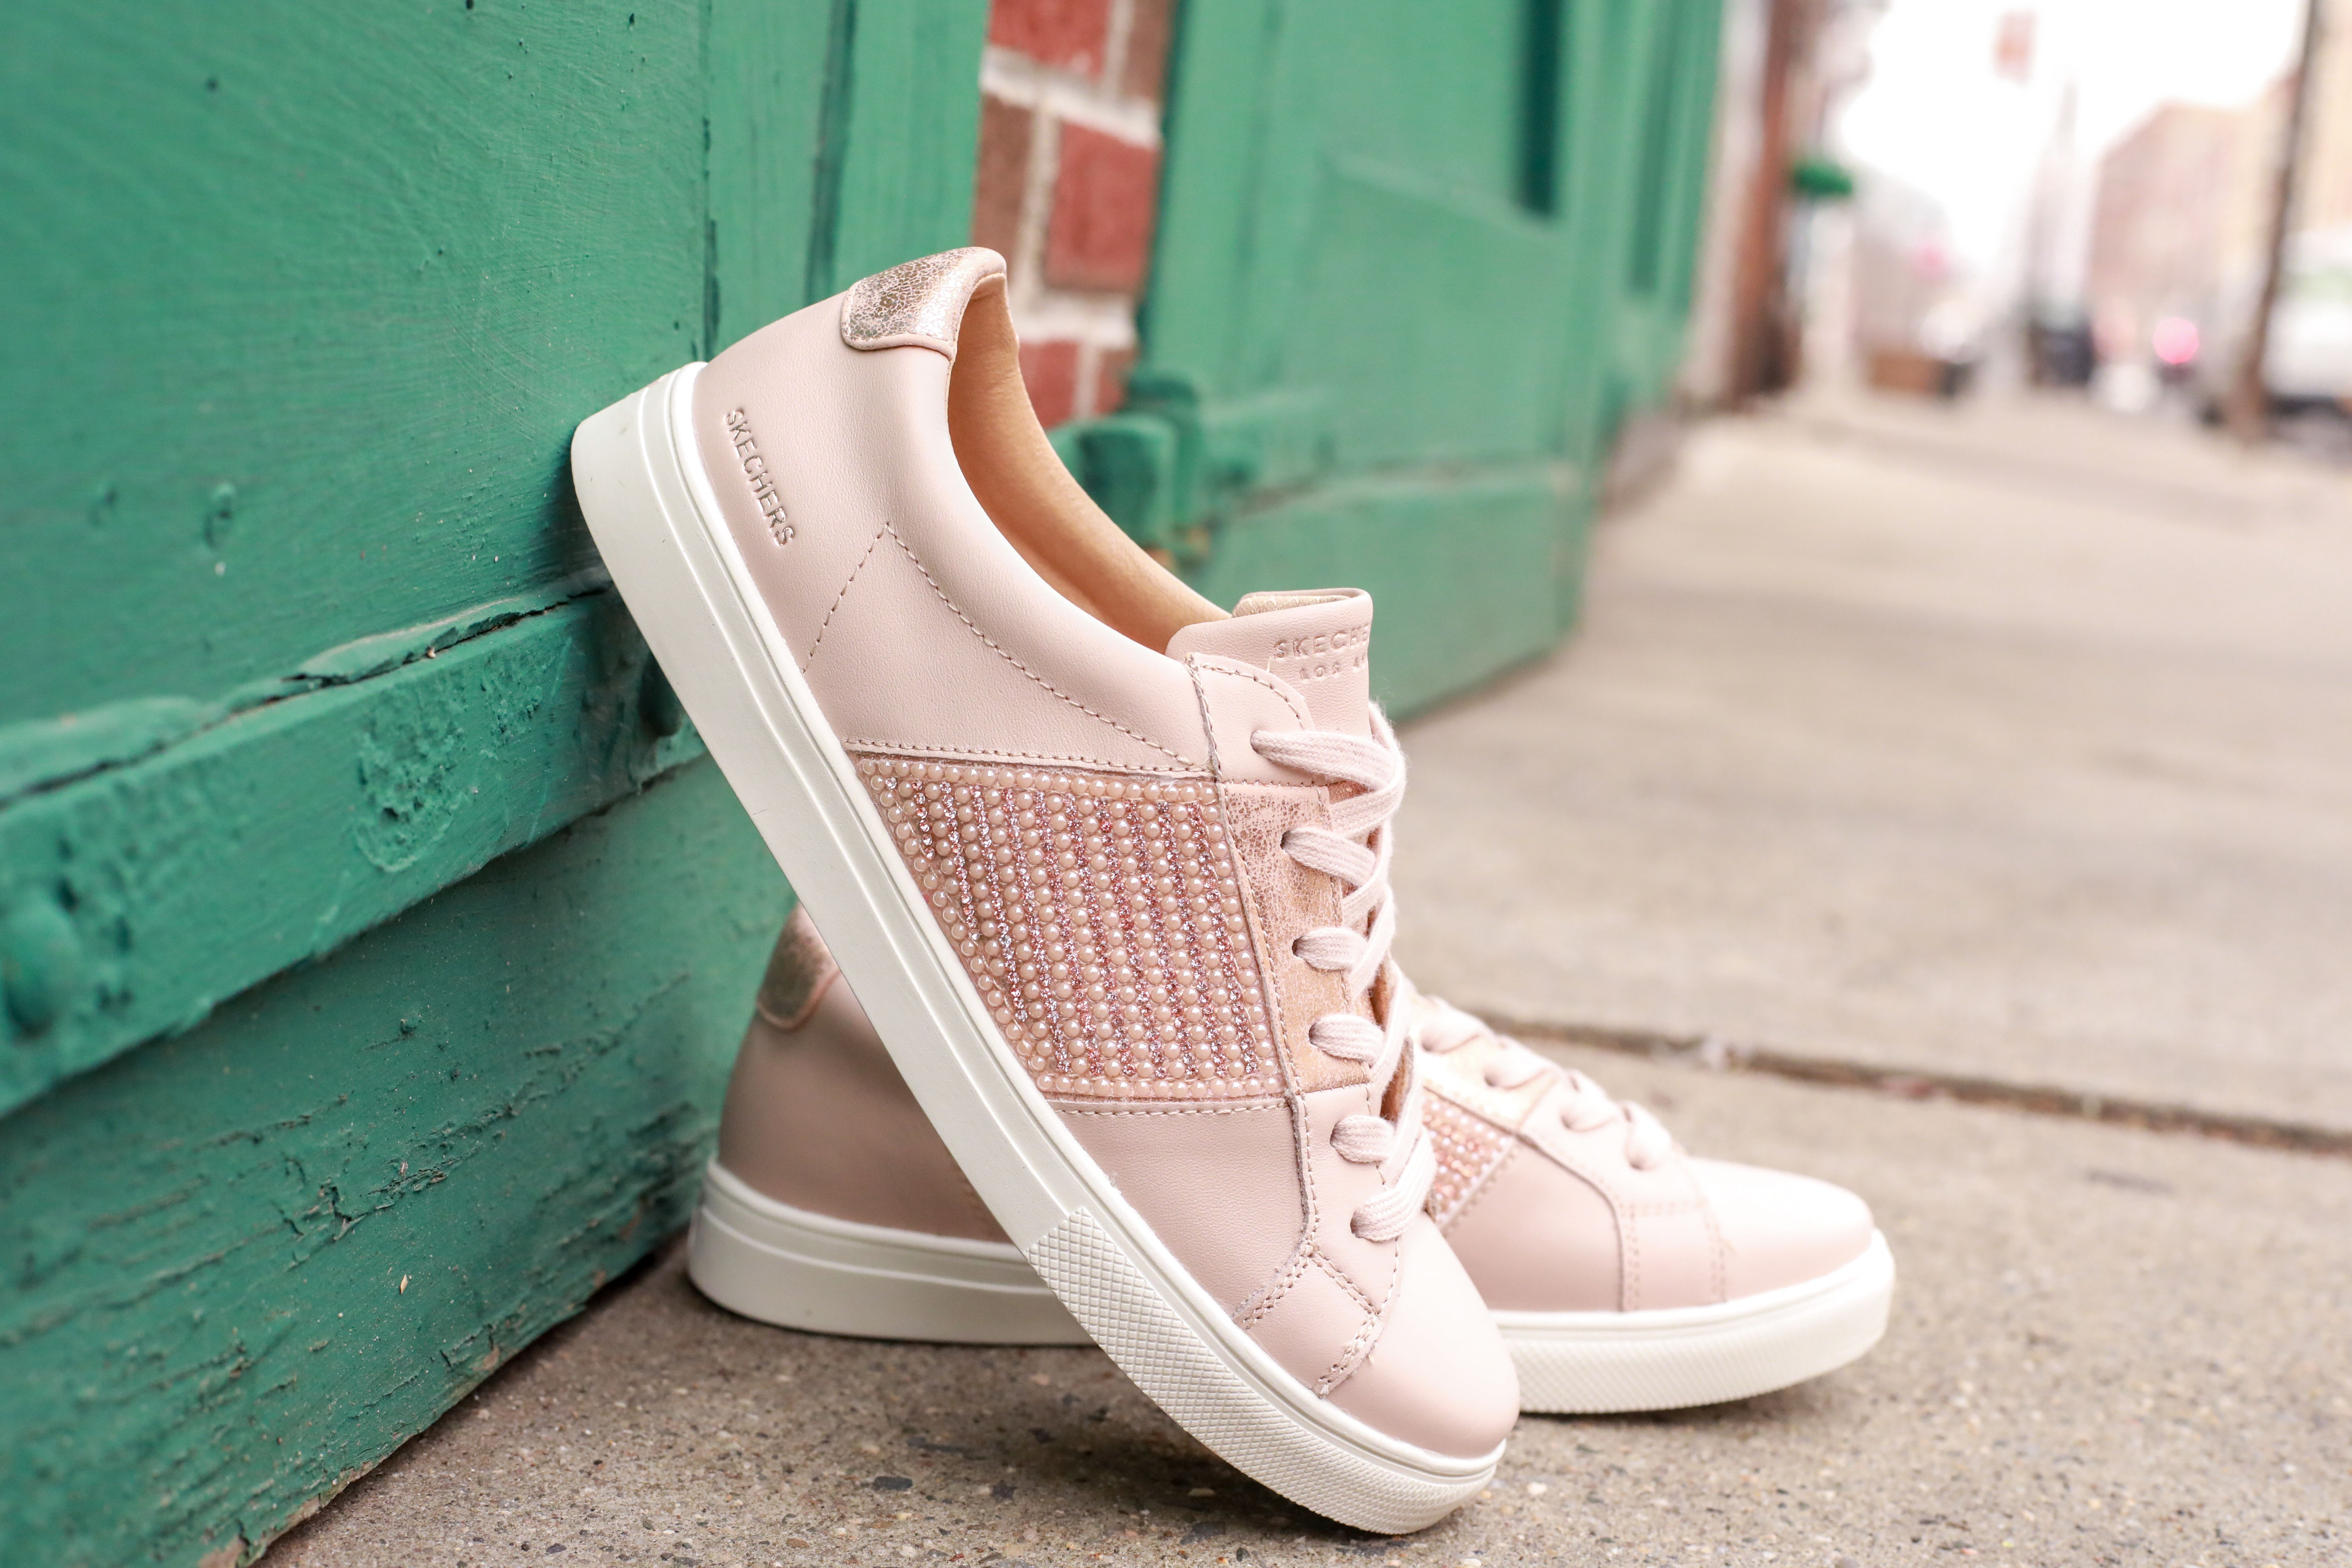 Moda Clean Street (With images) | Stylish sneakers, Nice